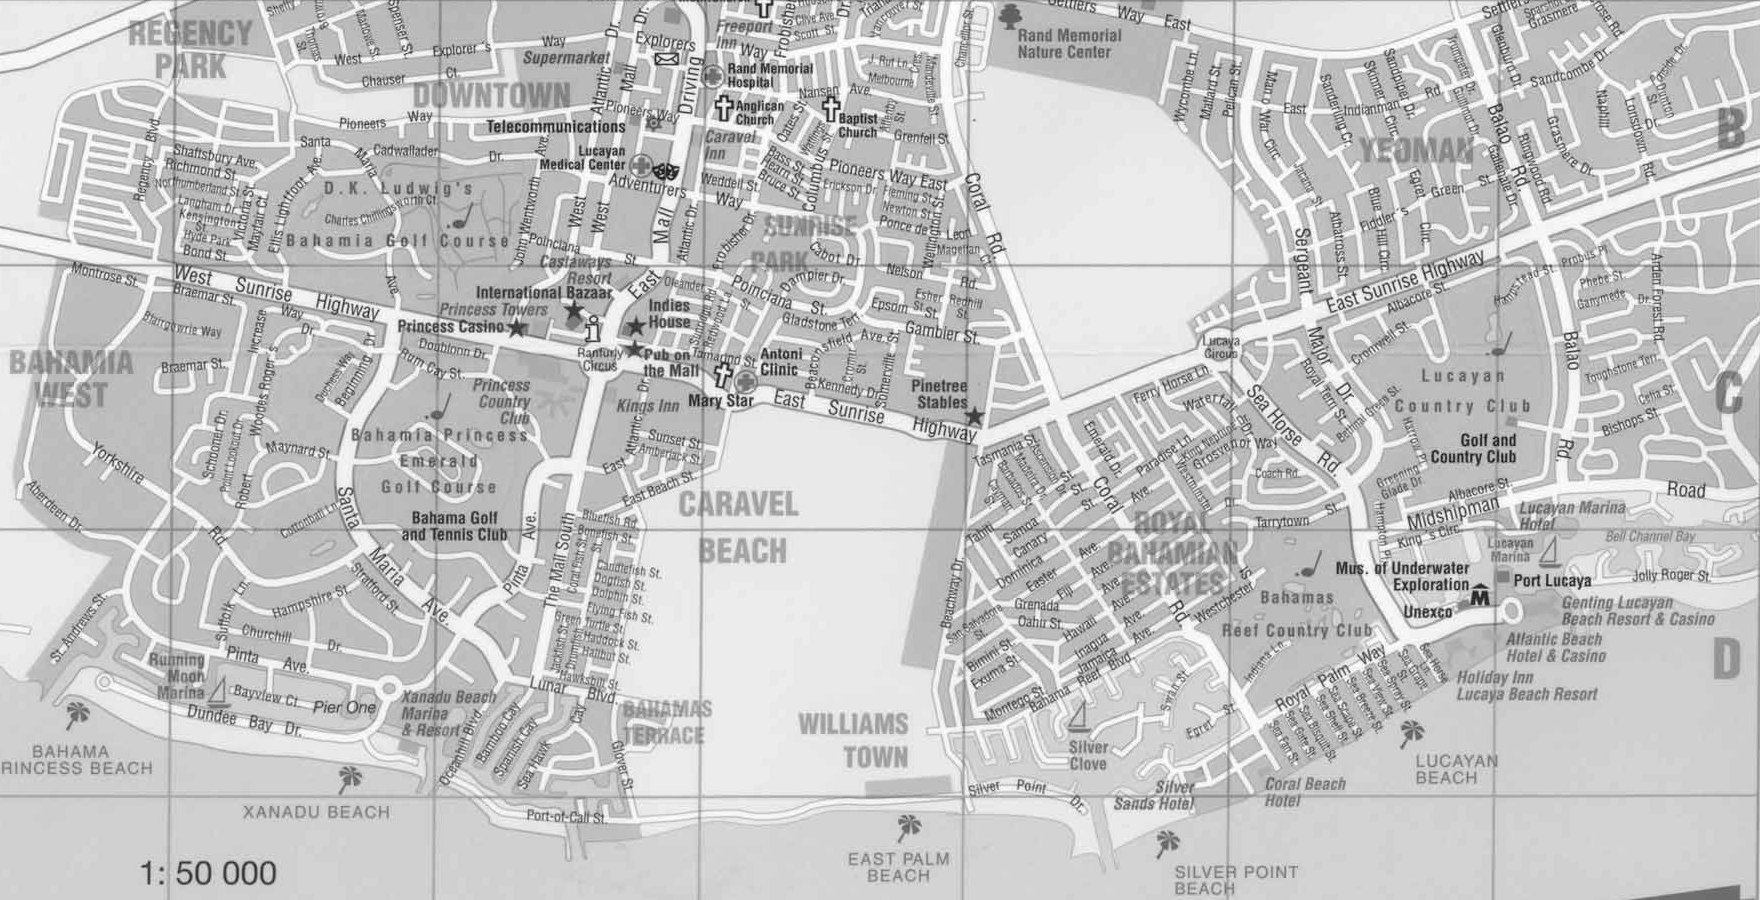 Map of Freeport and Lucaya with streets and detail Grand Bahama